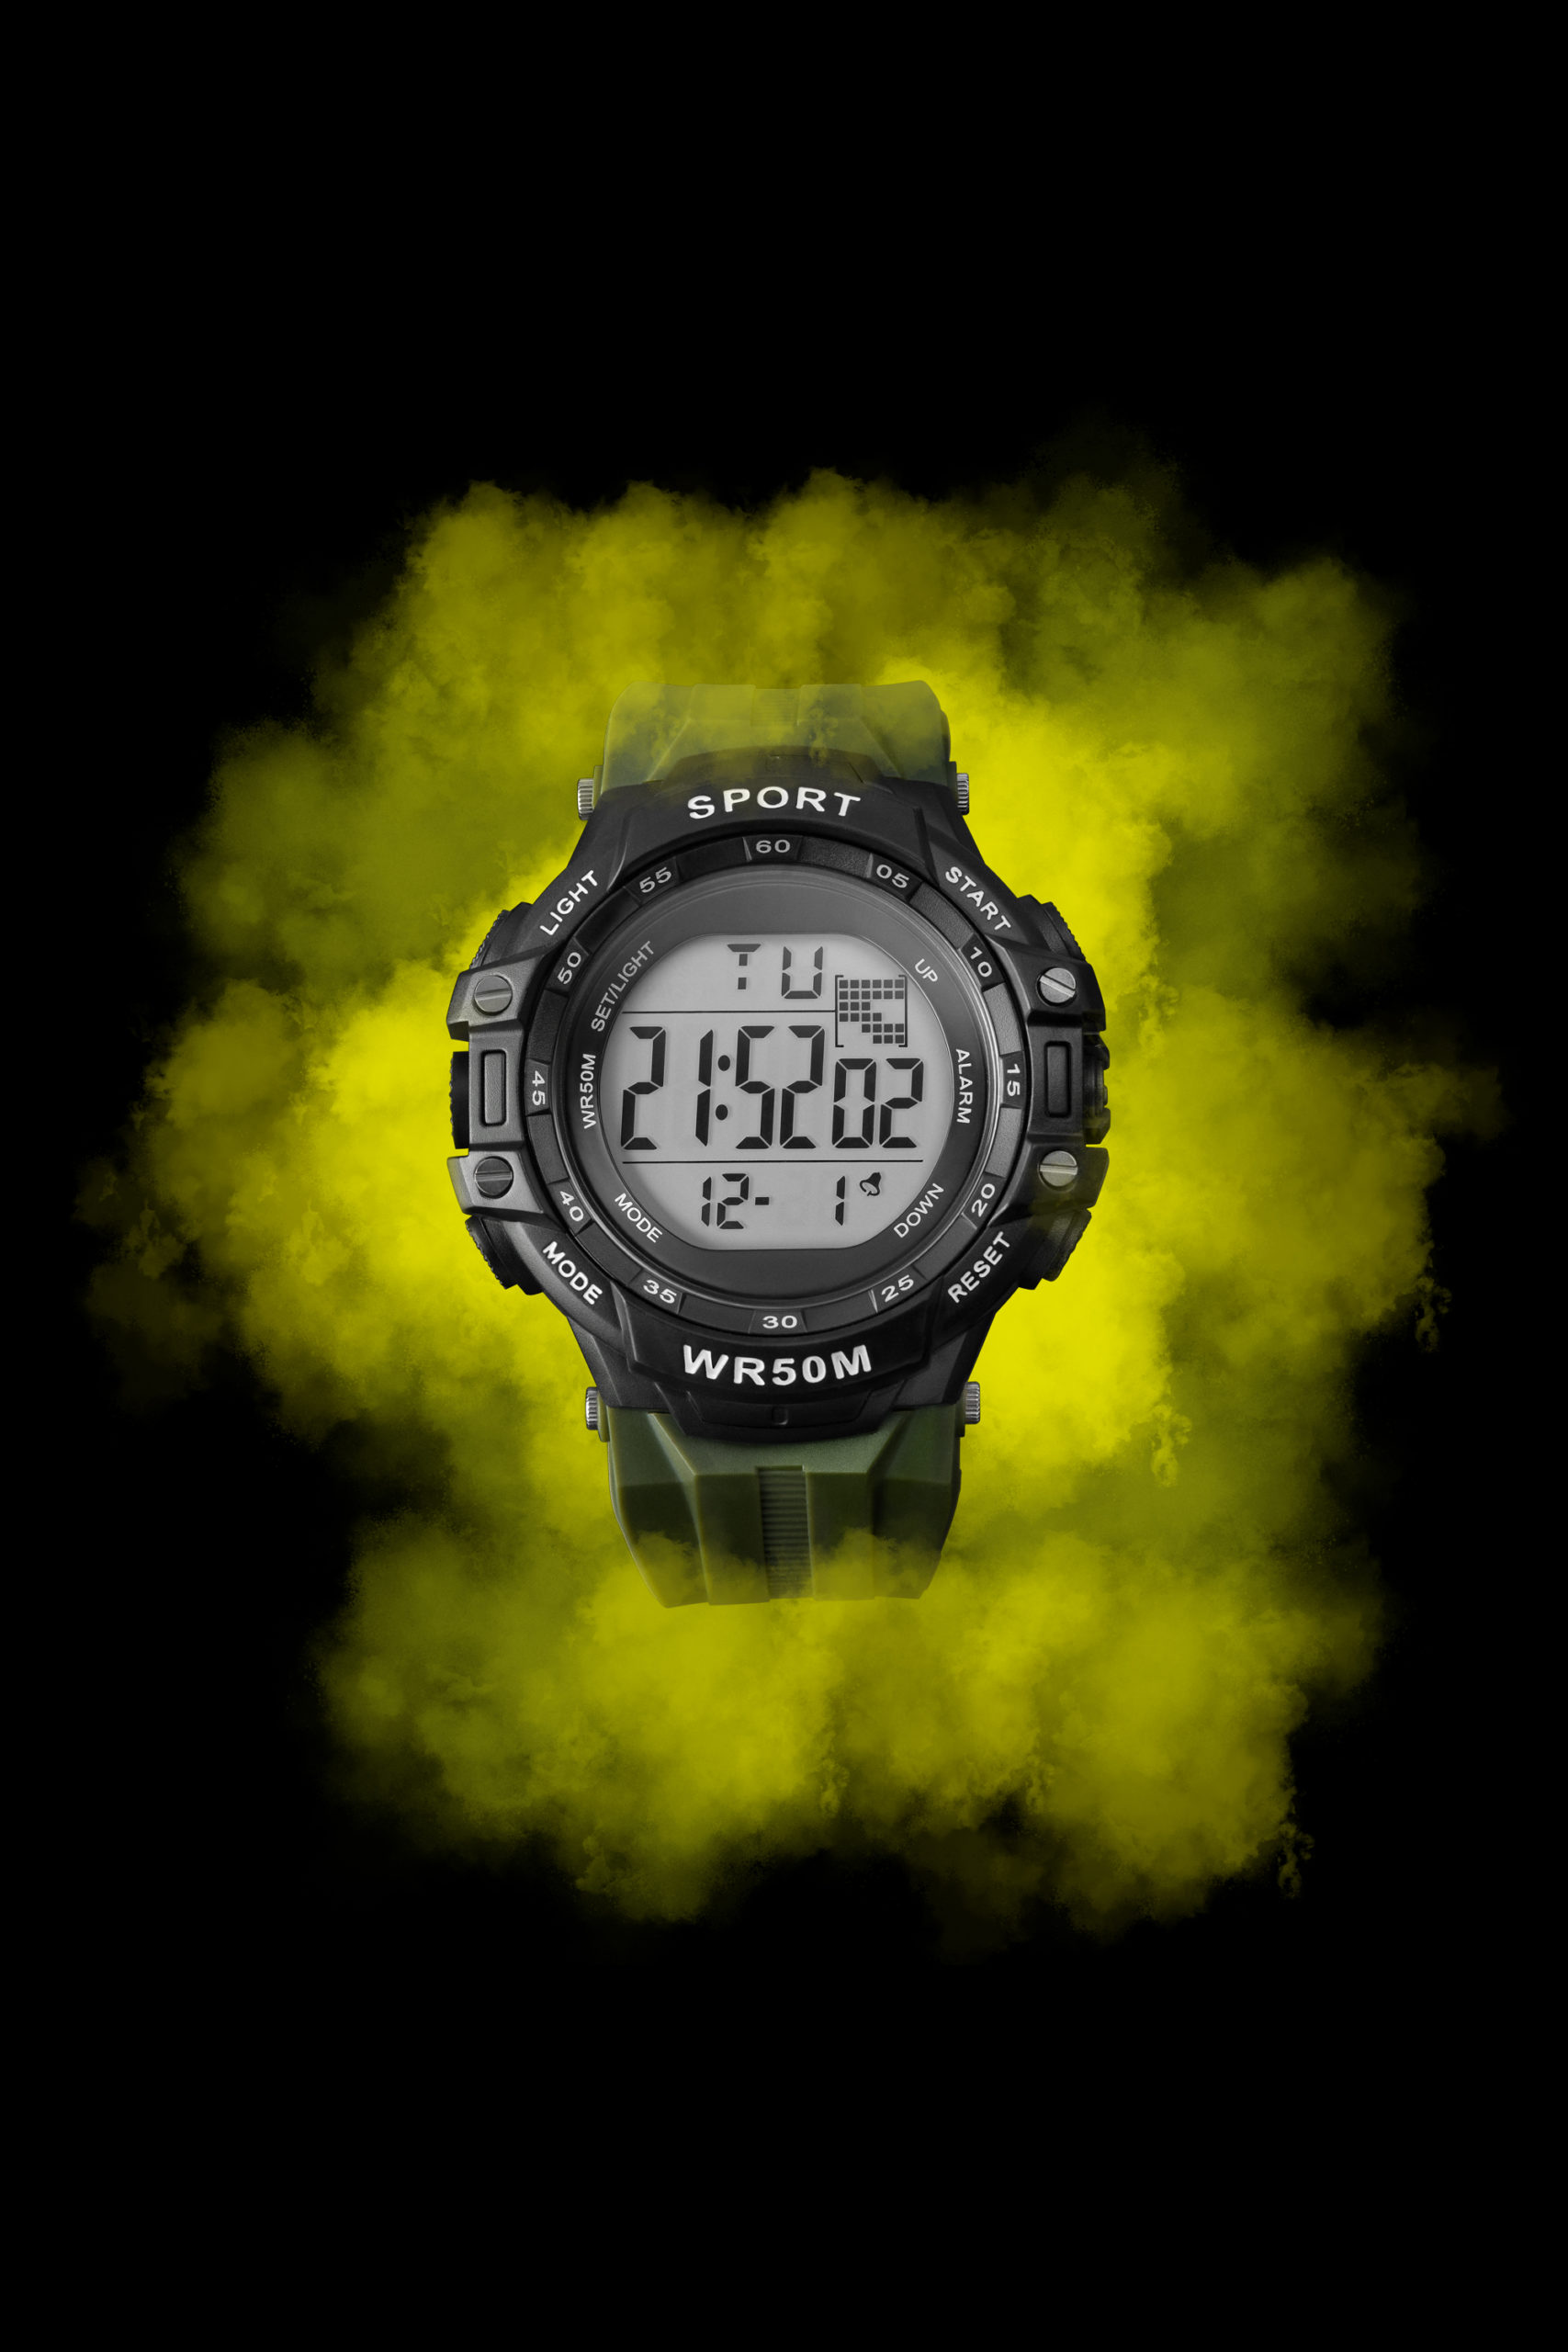 Wenbo Product Photography of Anko Watch with dramatic neon green smoke